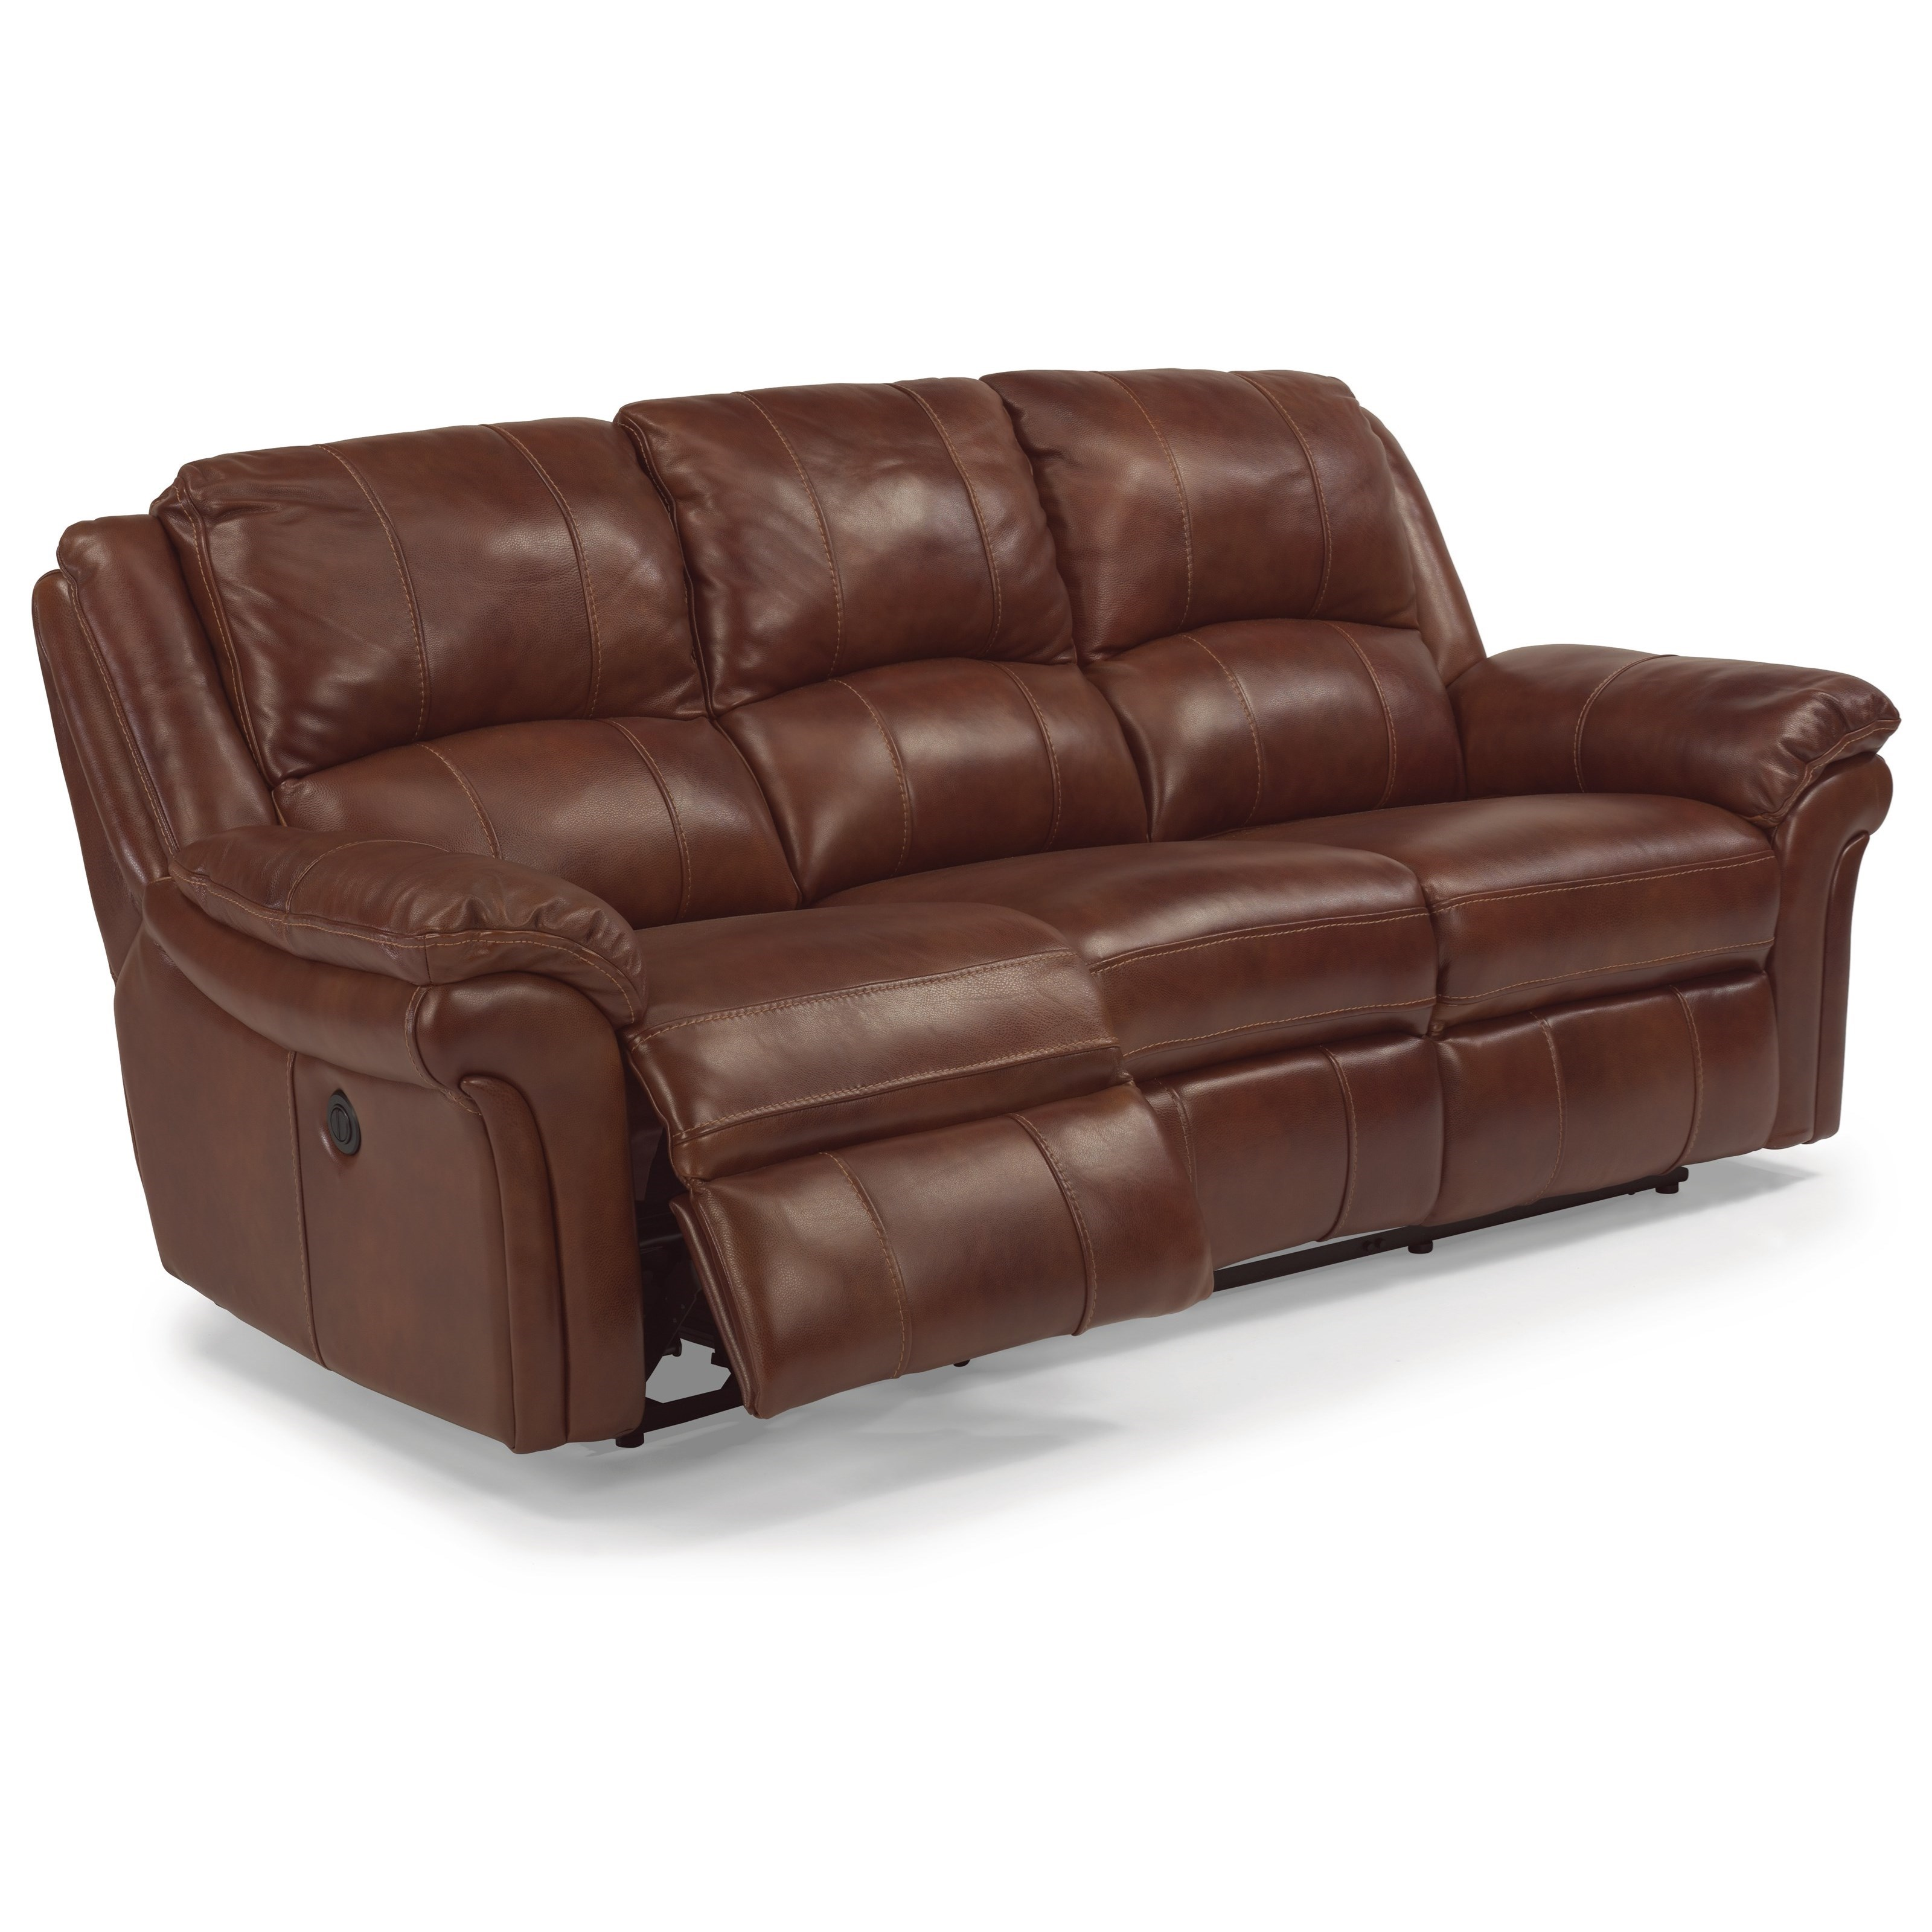 Flexsteel Latitudes - Dandridge Power Reclining Sofa - Item Number: 1351-62P-368-54